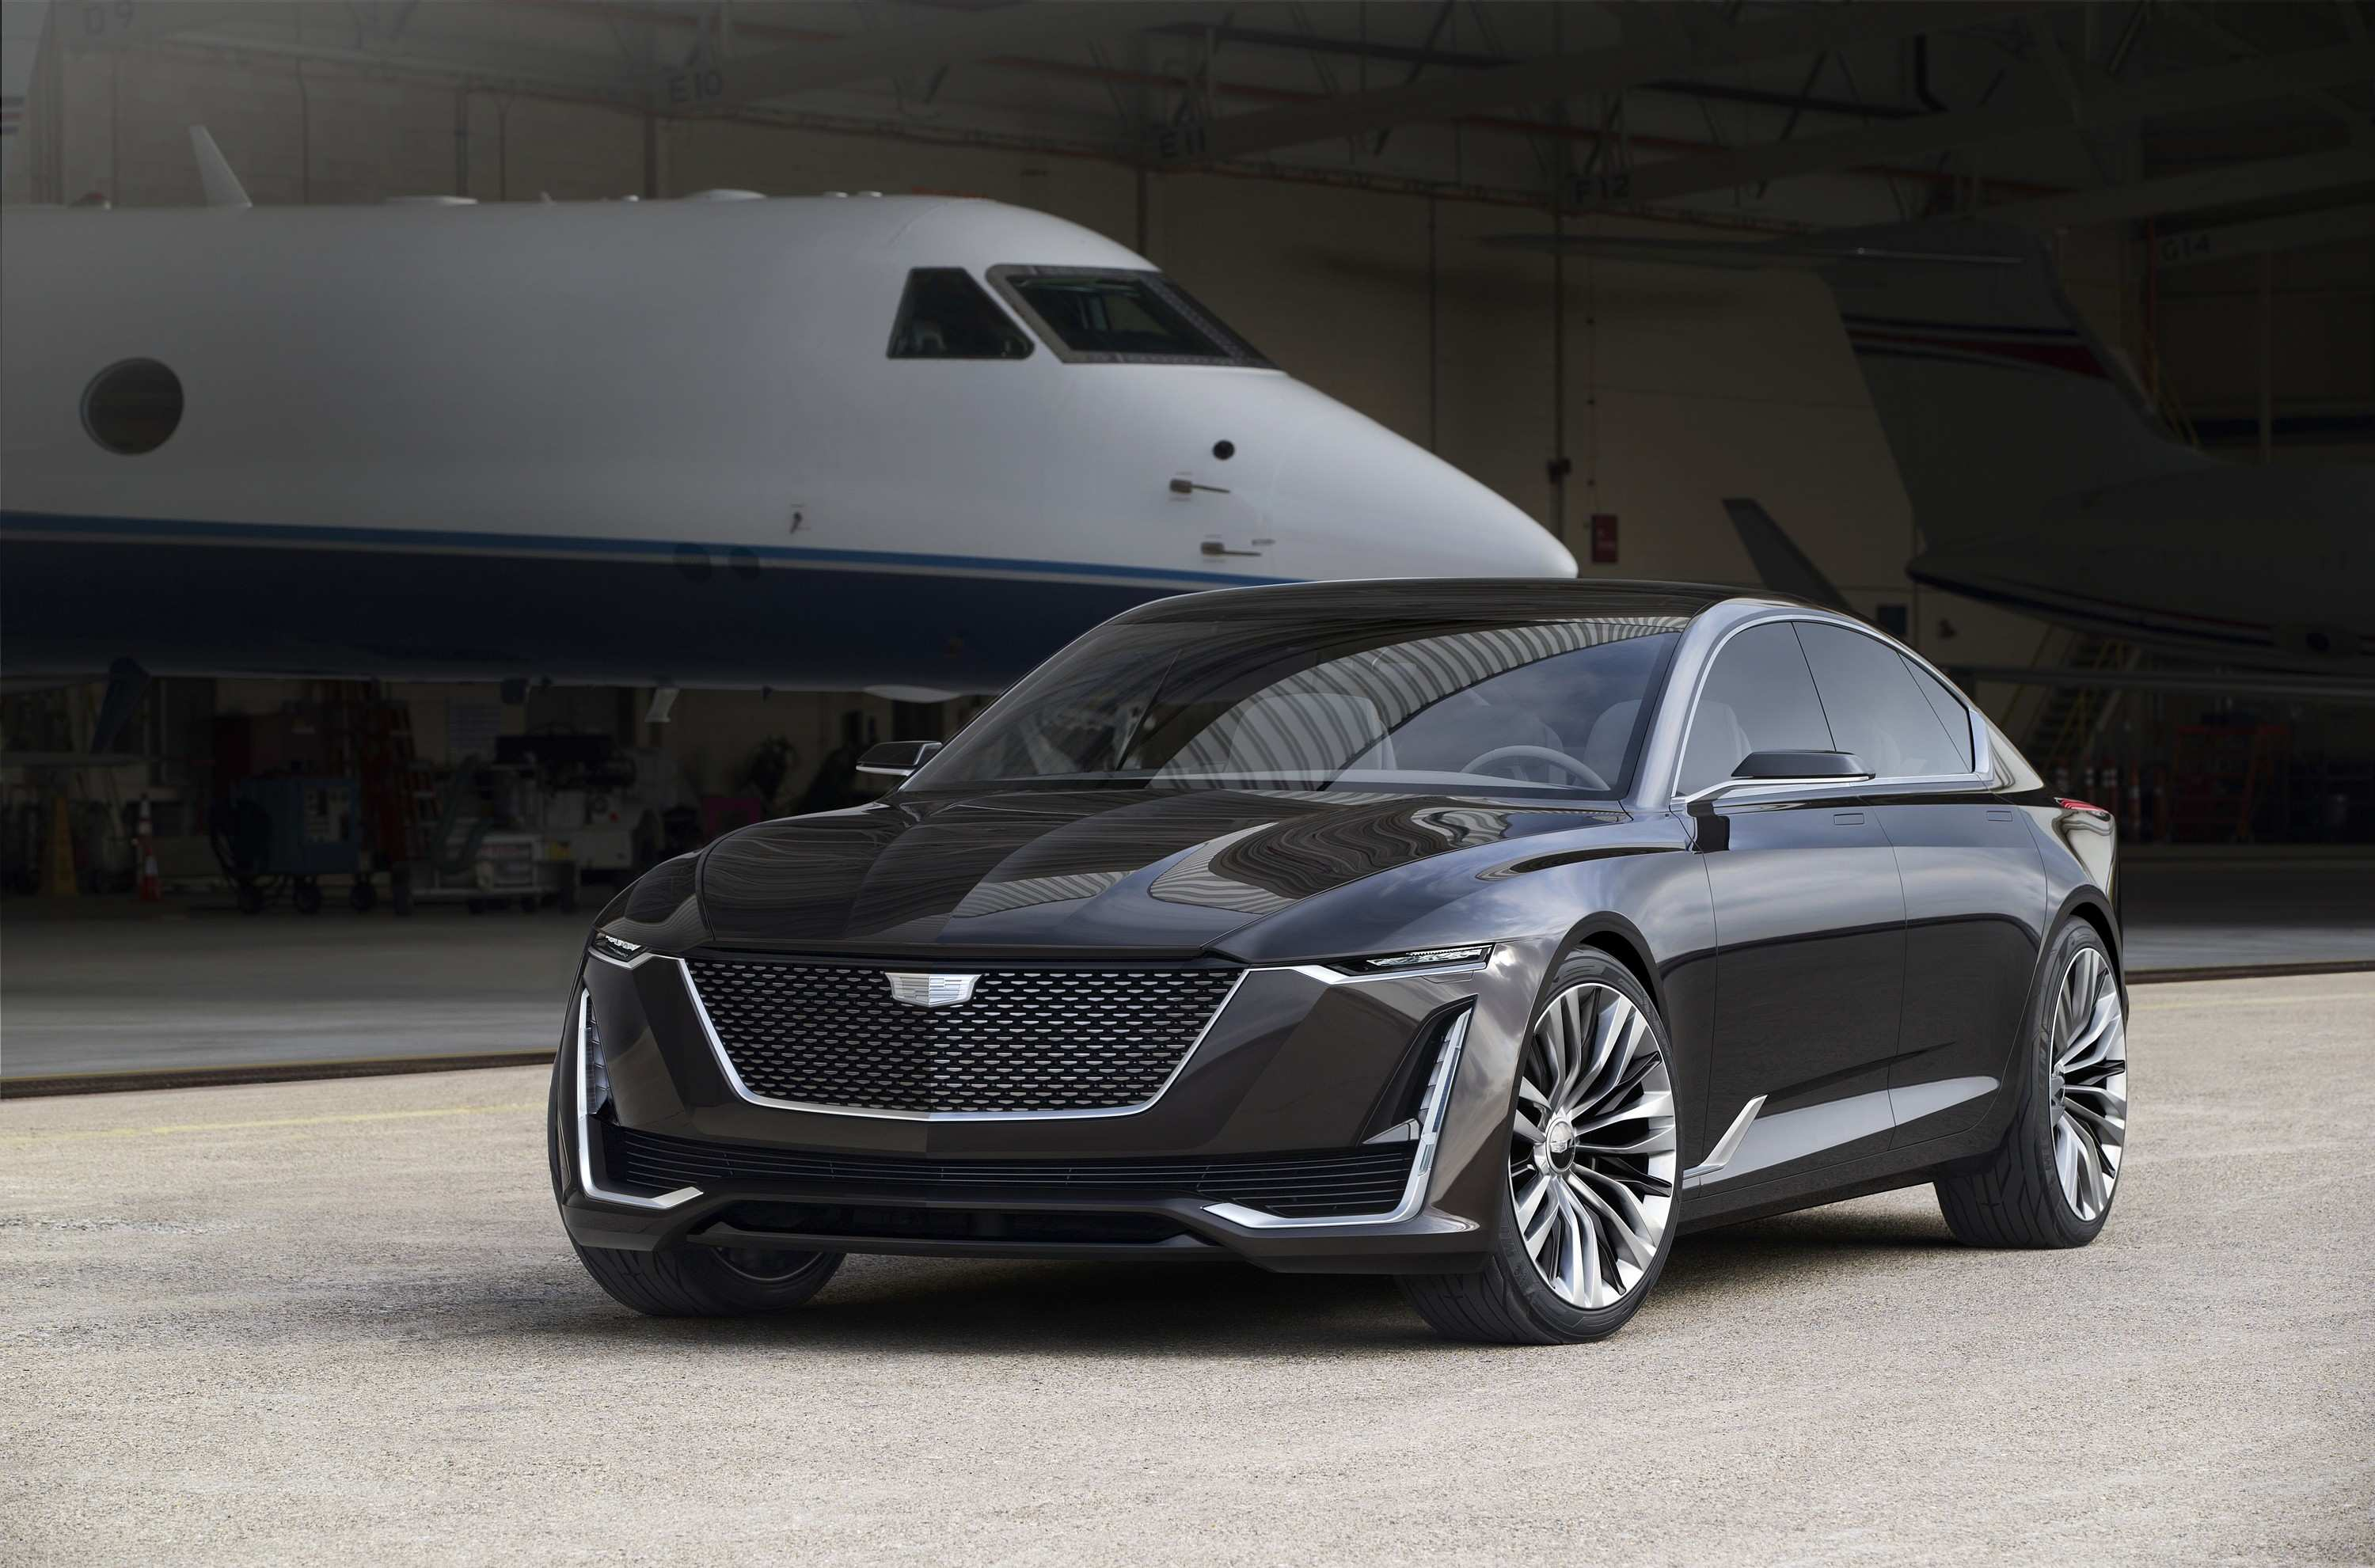 46 All New 2020 Cadillac Ct6 V8 Release by 2020 Cadillac Ct6 V8